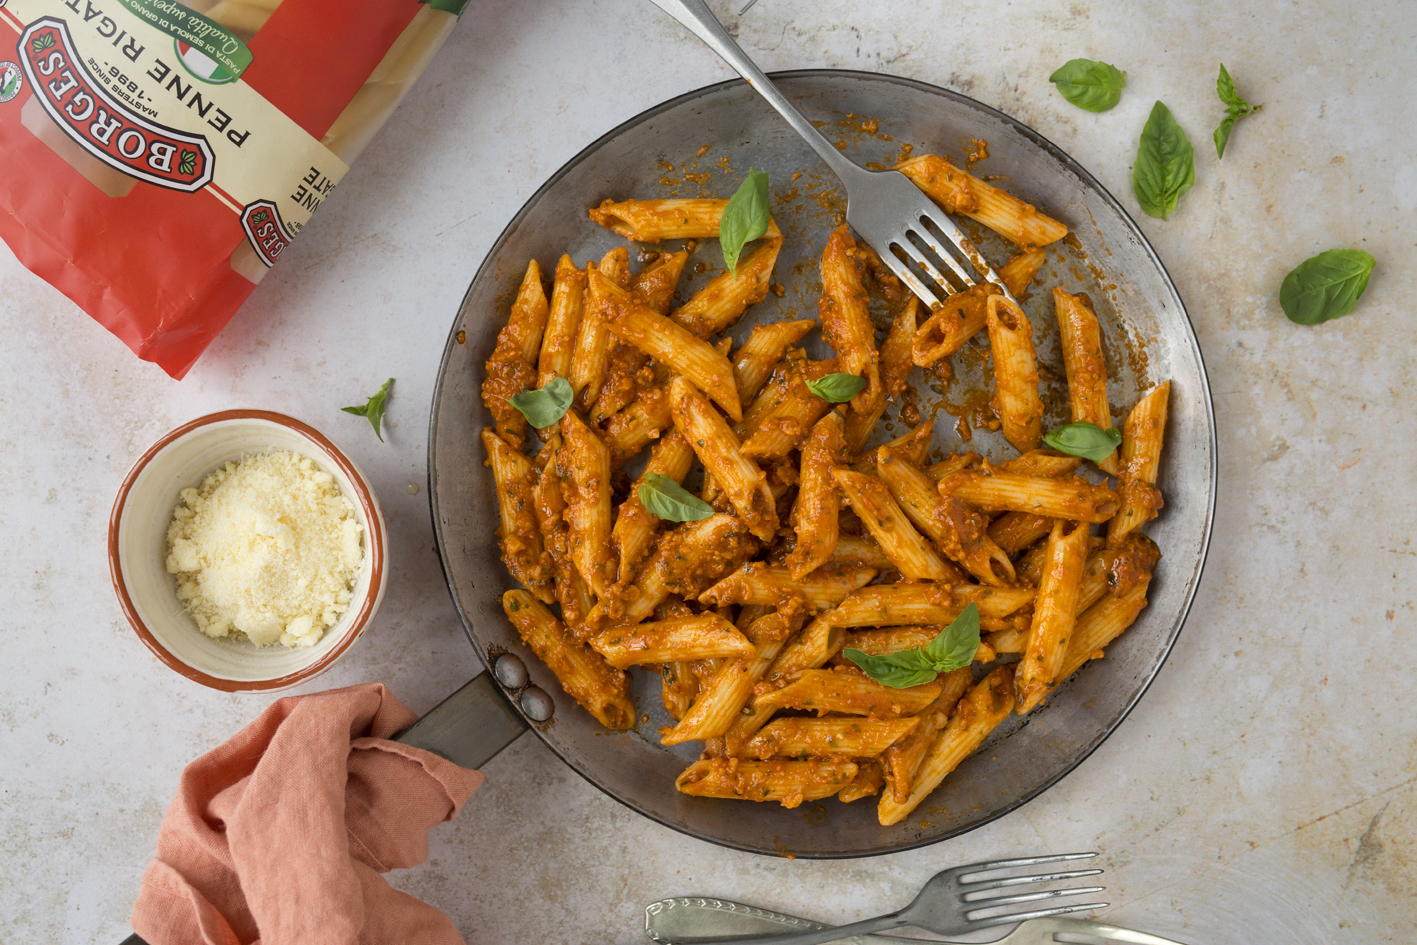 Pasta with tomato and cashew nuts